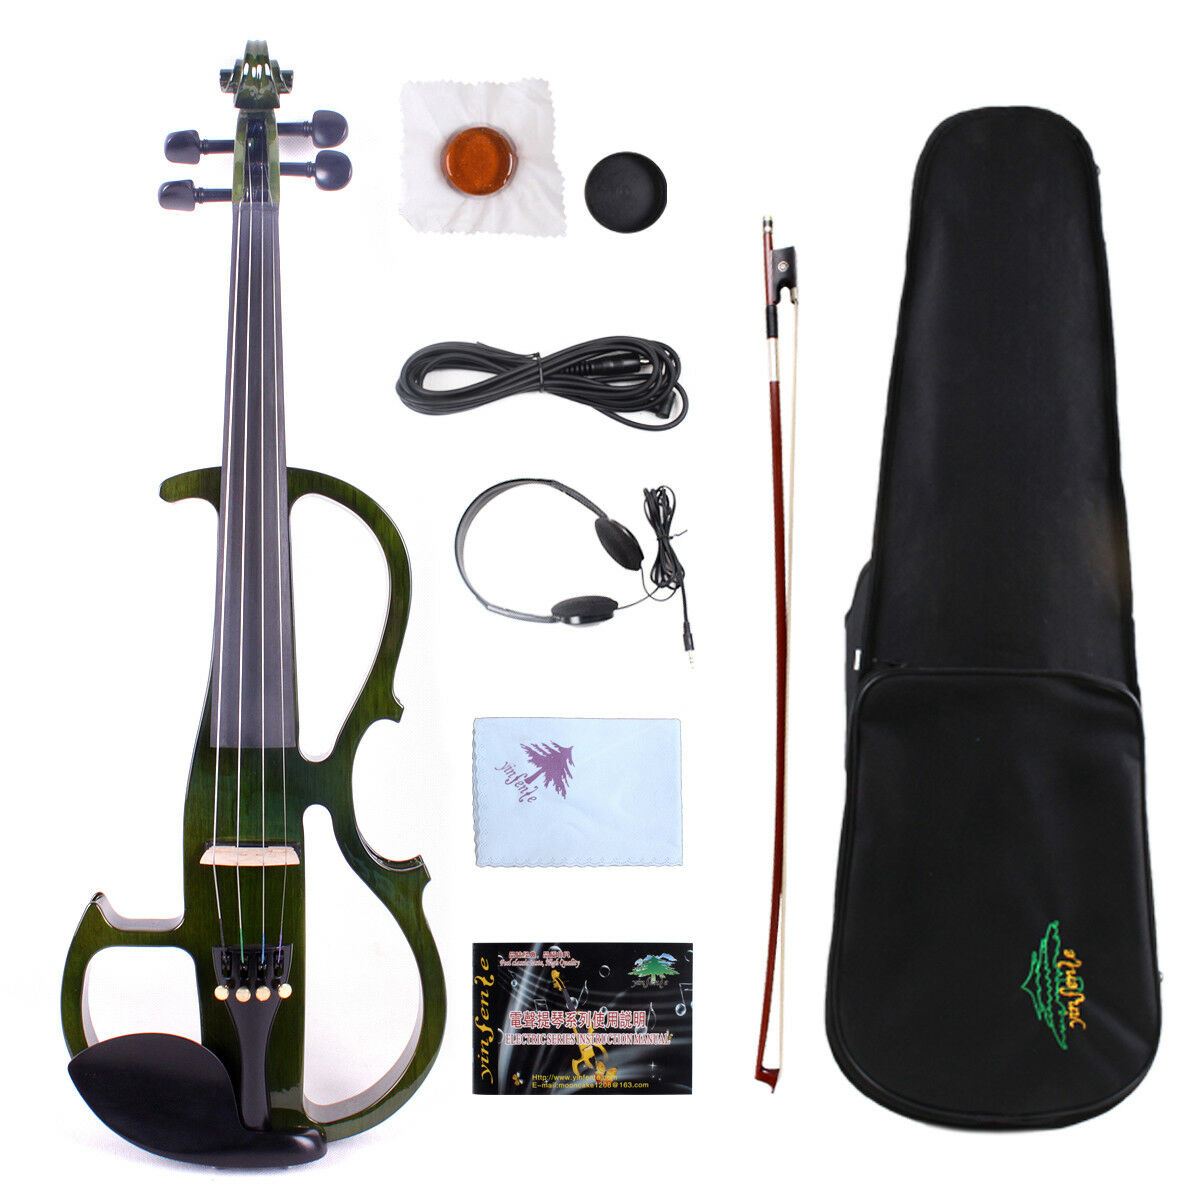 Yinfente 4 4 Electric Silent Violin Wooden Free Case Bow Cable  EV8